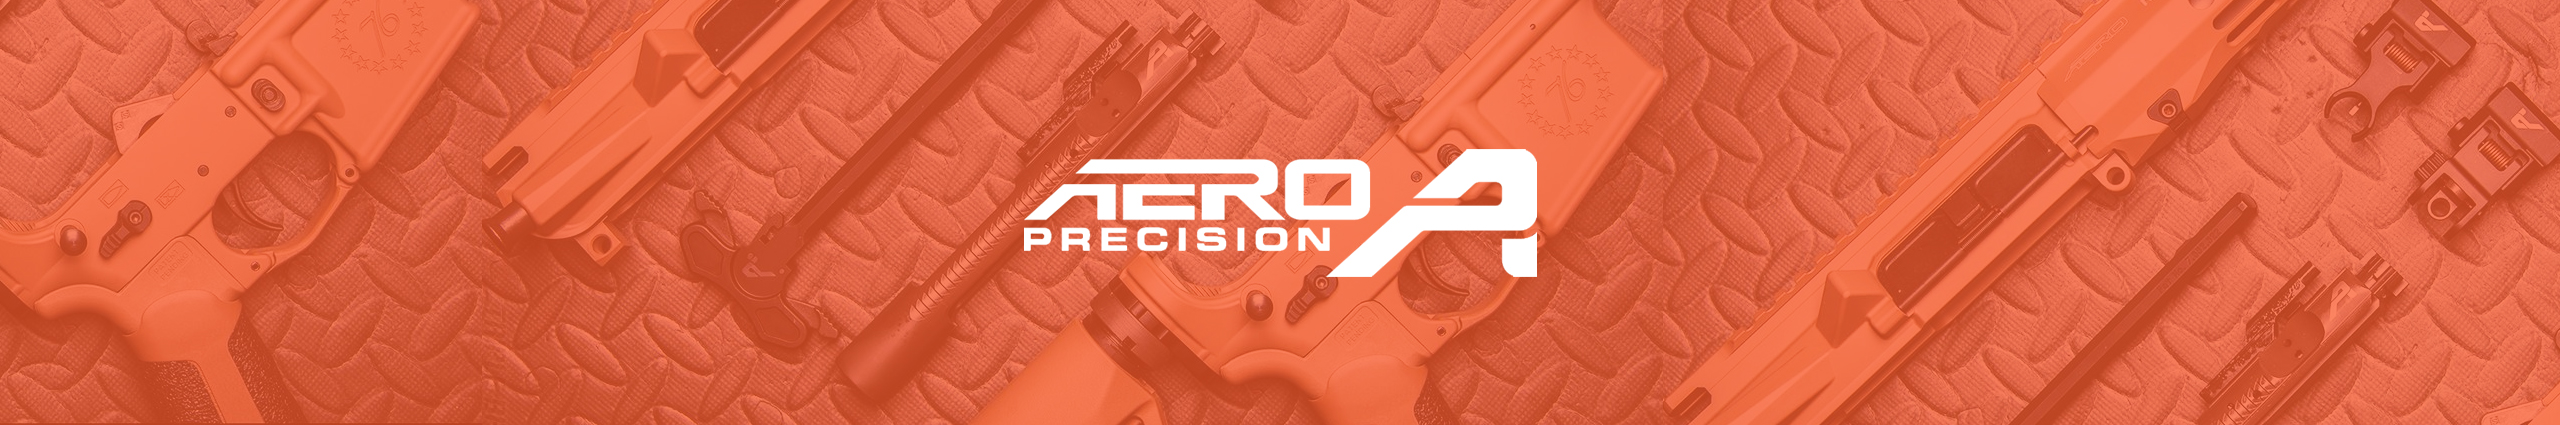 Aero-Precision-USA-case-study